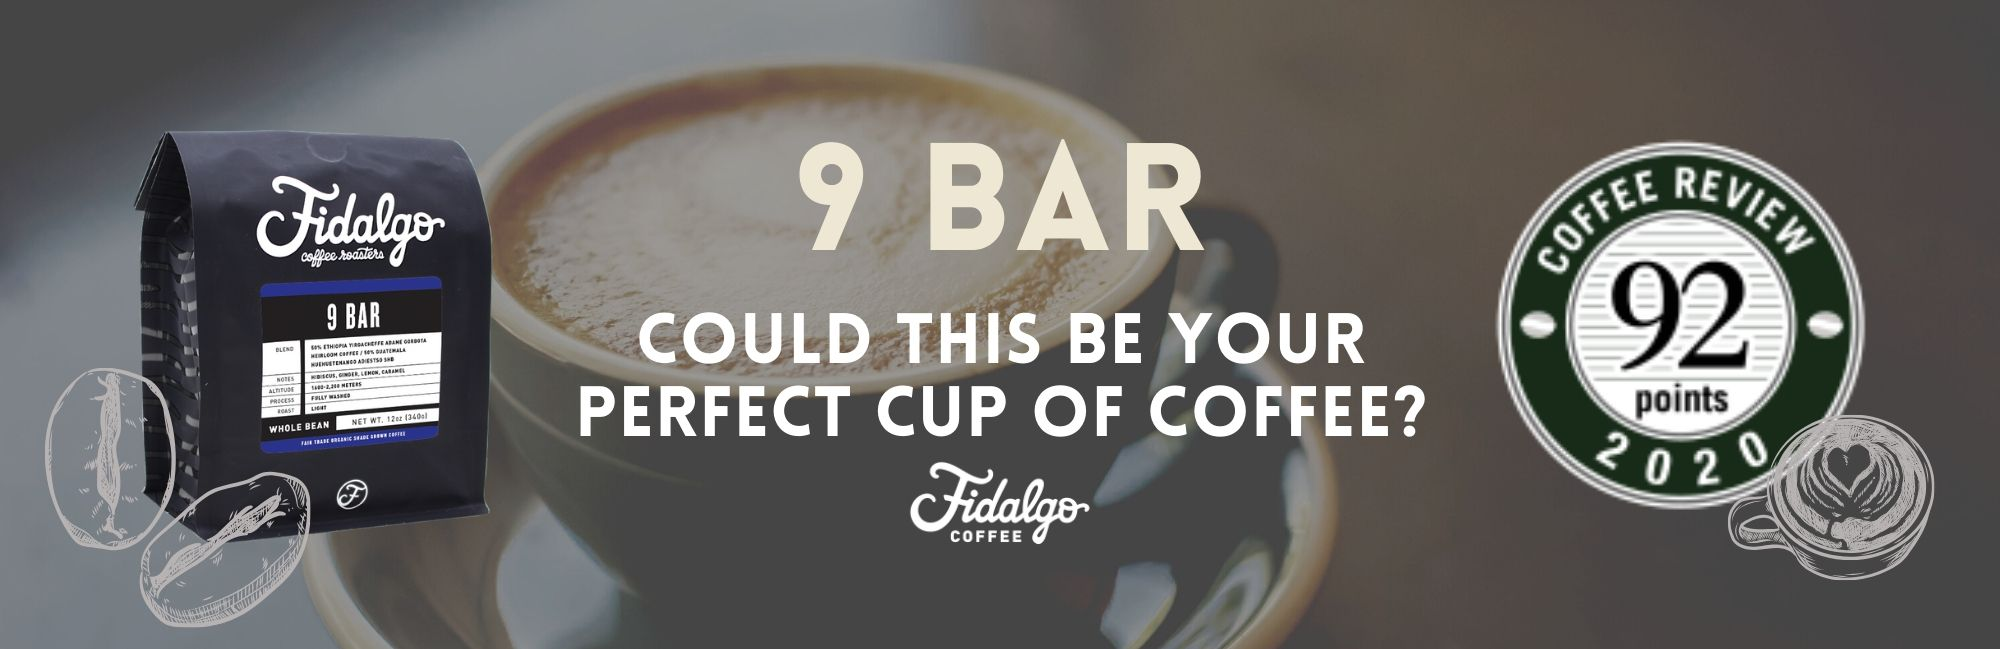 Could 9 Bar Be Your Perfect Cup?